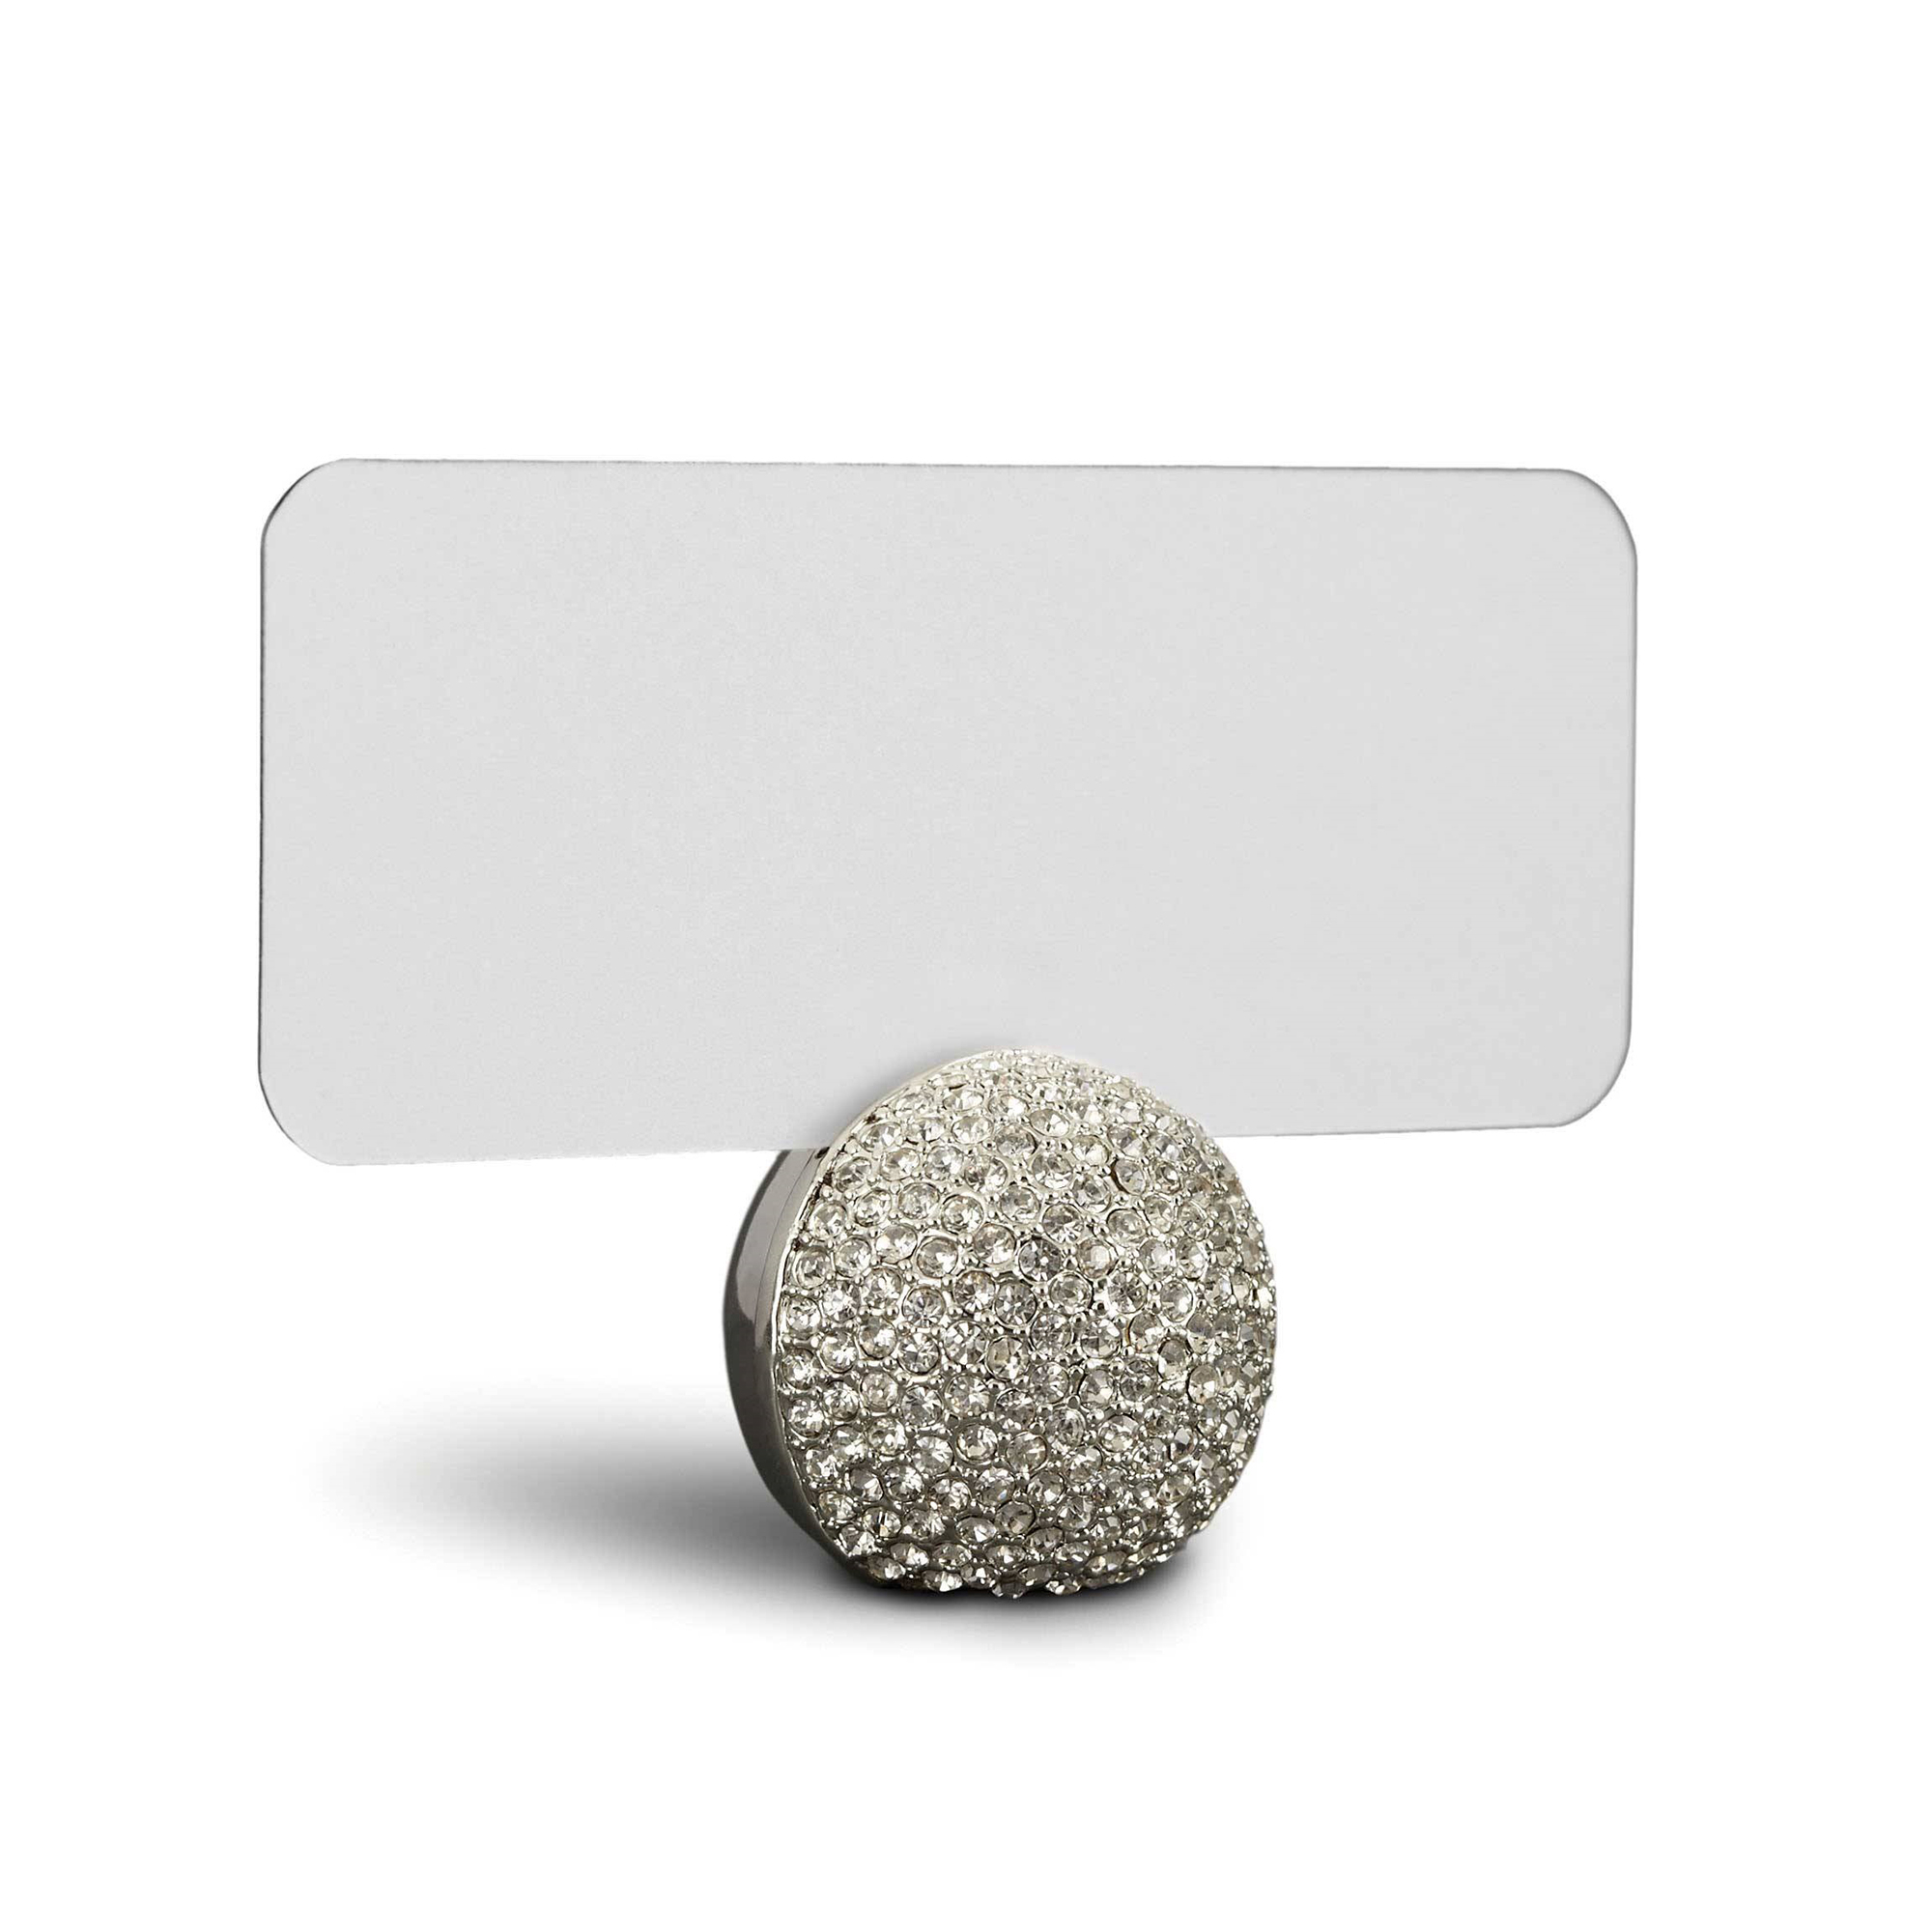 L'Objet Platinum Sphere Placecard Holders, Set of 6